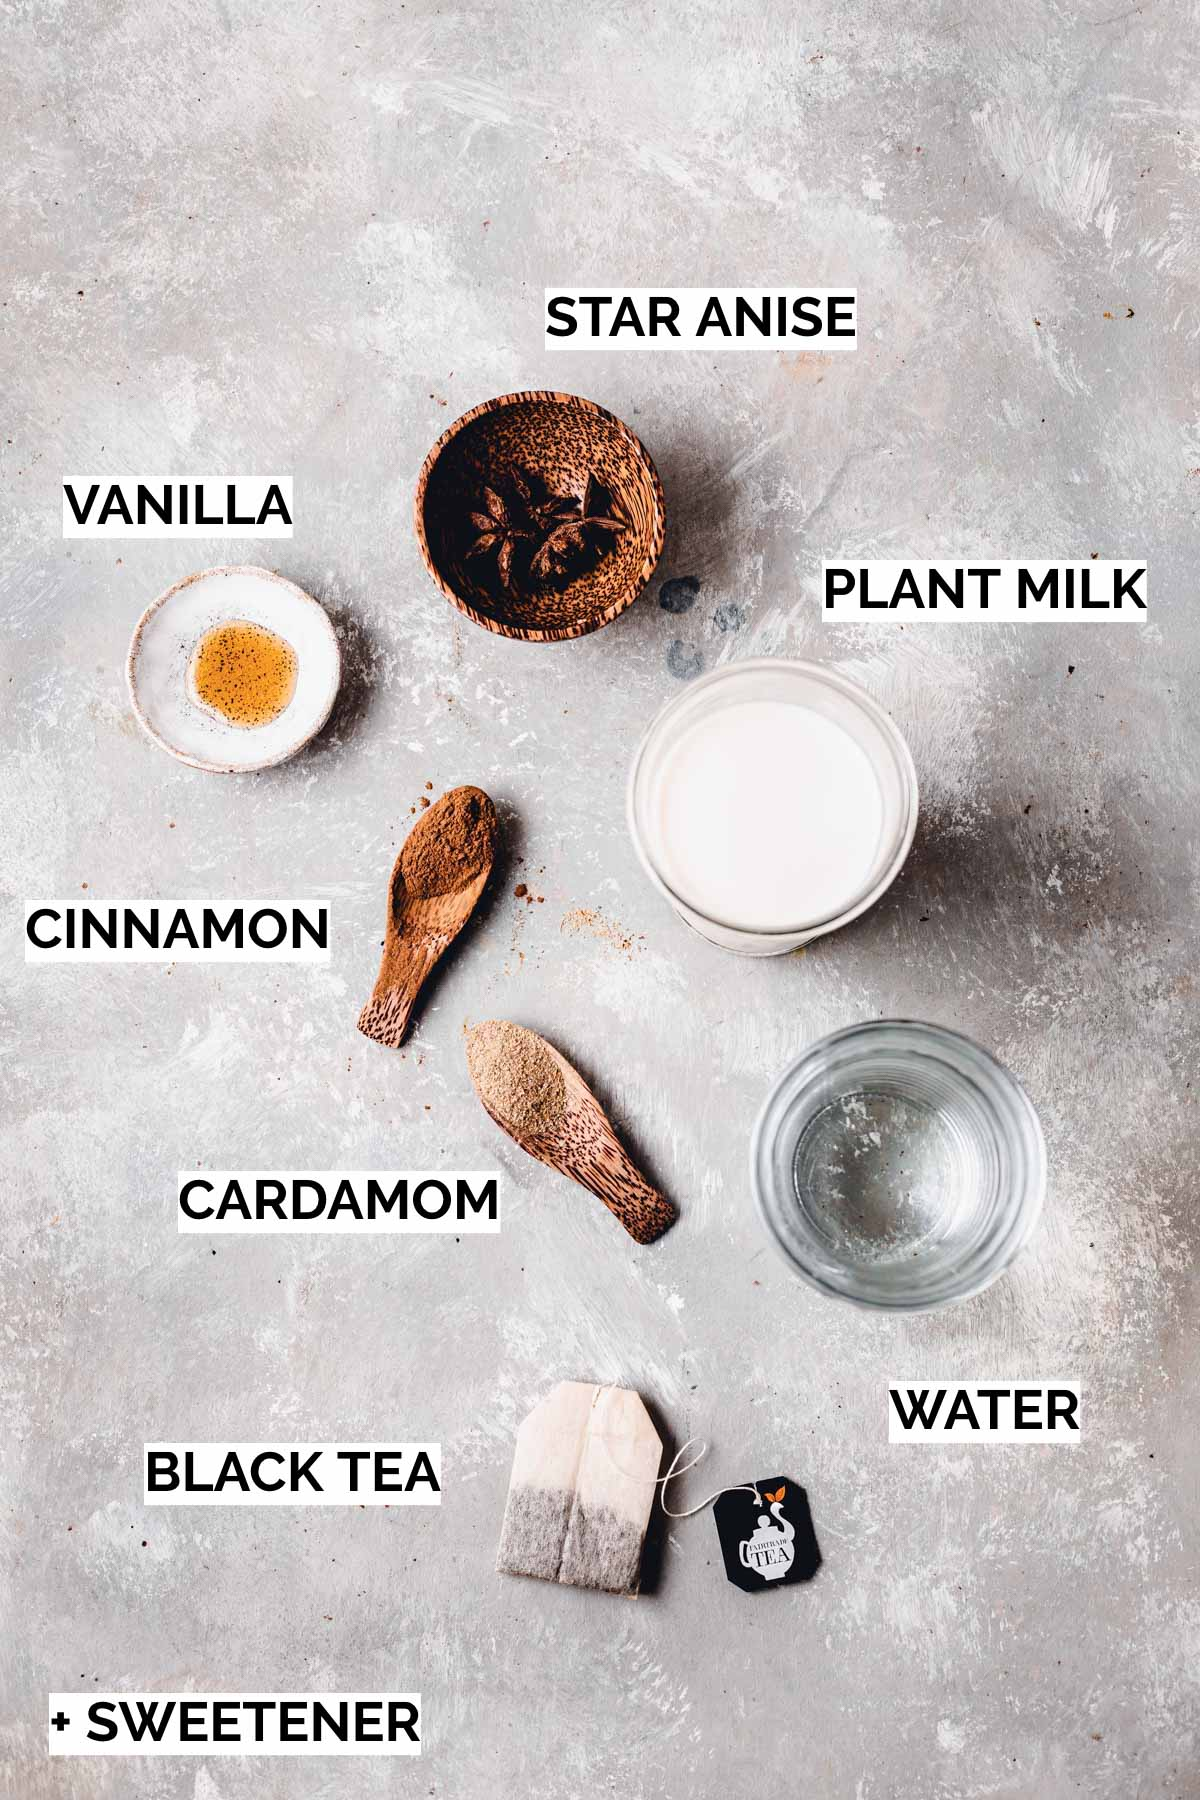 All ingredients needed to make an iced chai latte.